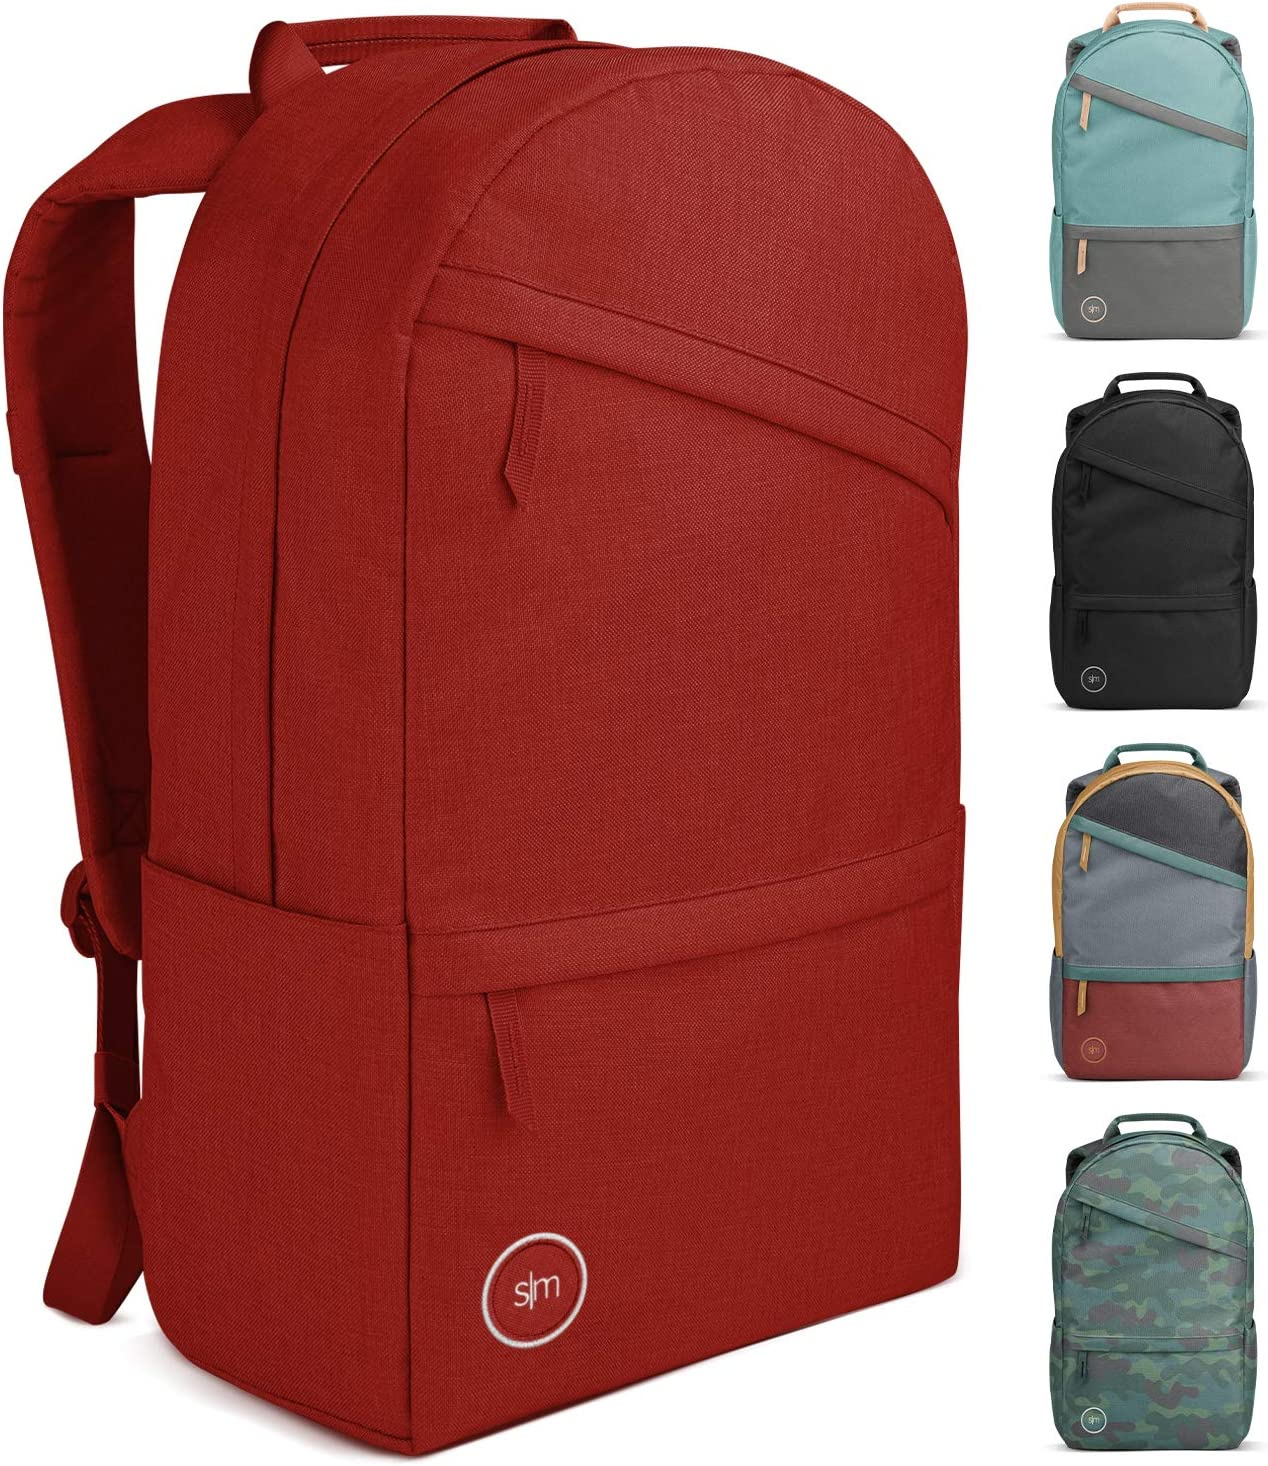 Simple Modern Legacy Backpack with Laptop Compartment Sleeve - 25L Travel Bag for Men & Women College Work School -Cherry